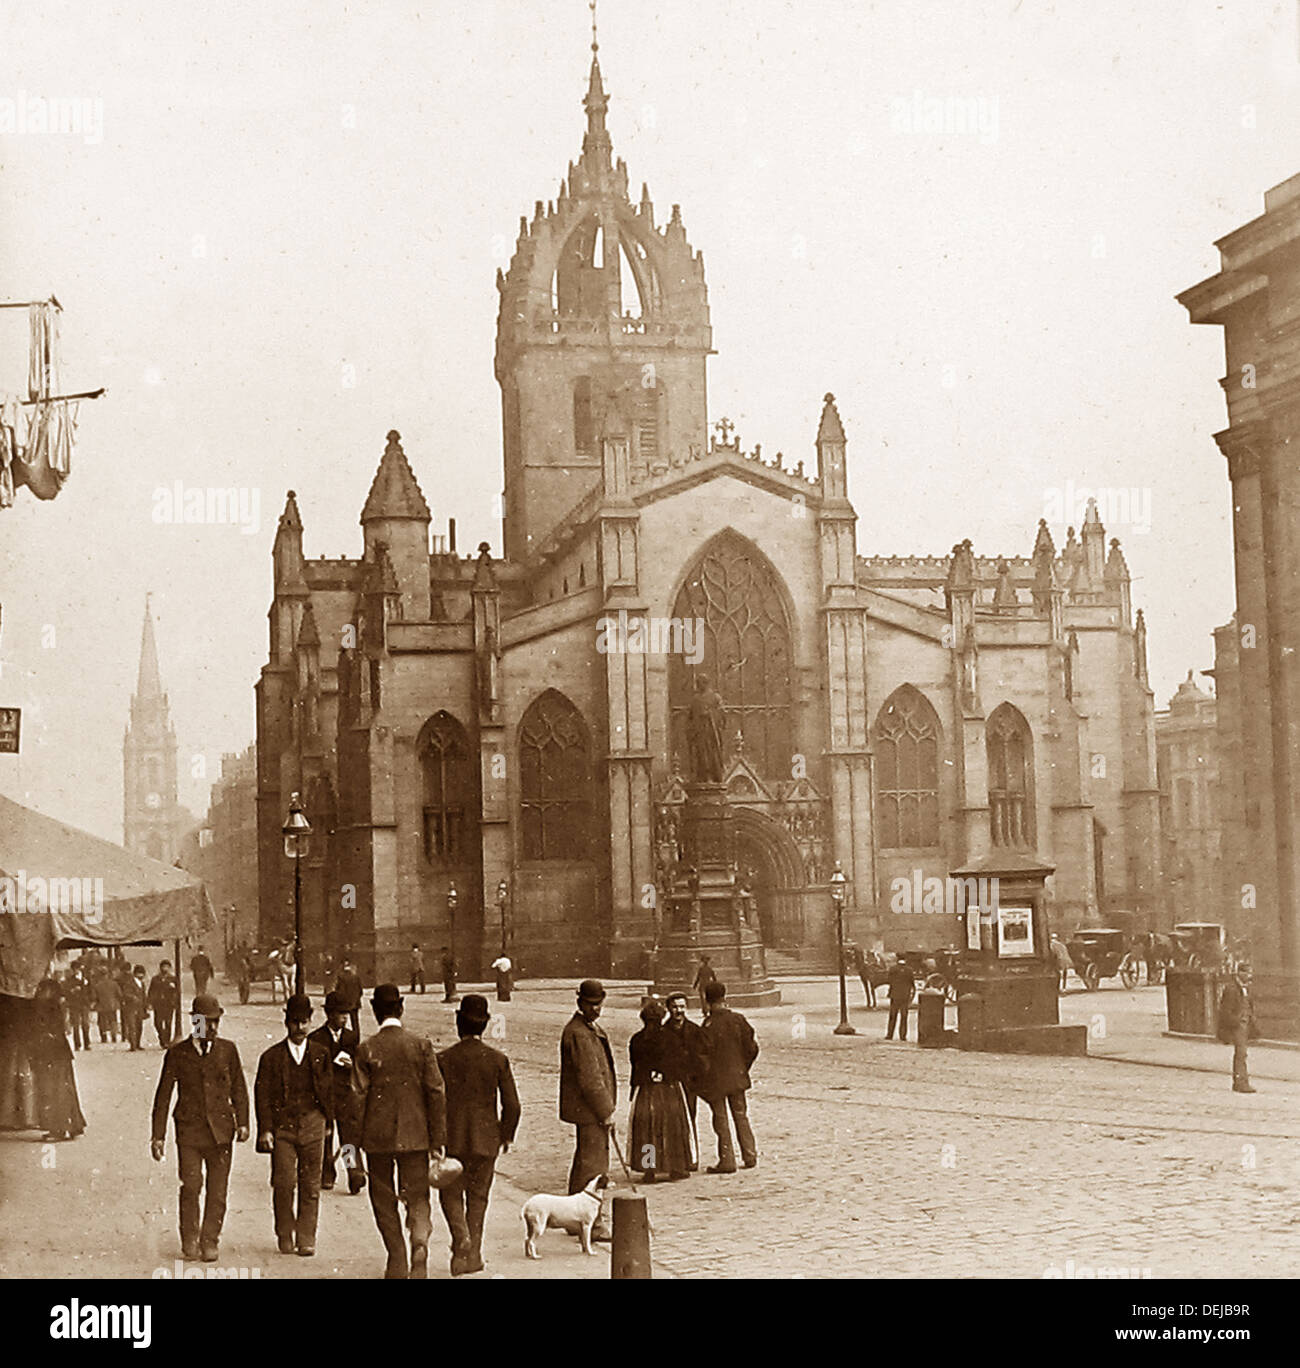 Edinburgh St. Giles Cathedral Royal Mile Victorian period - Stock Image